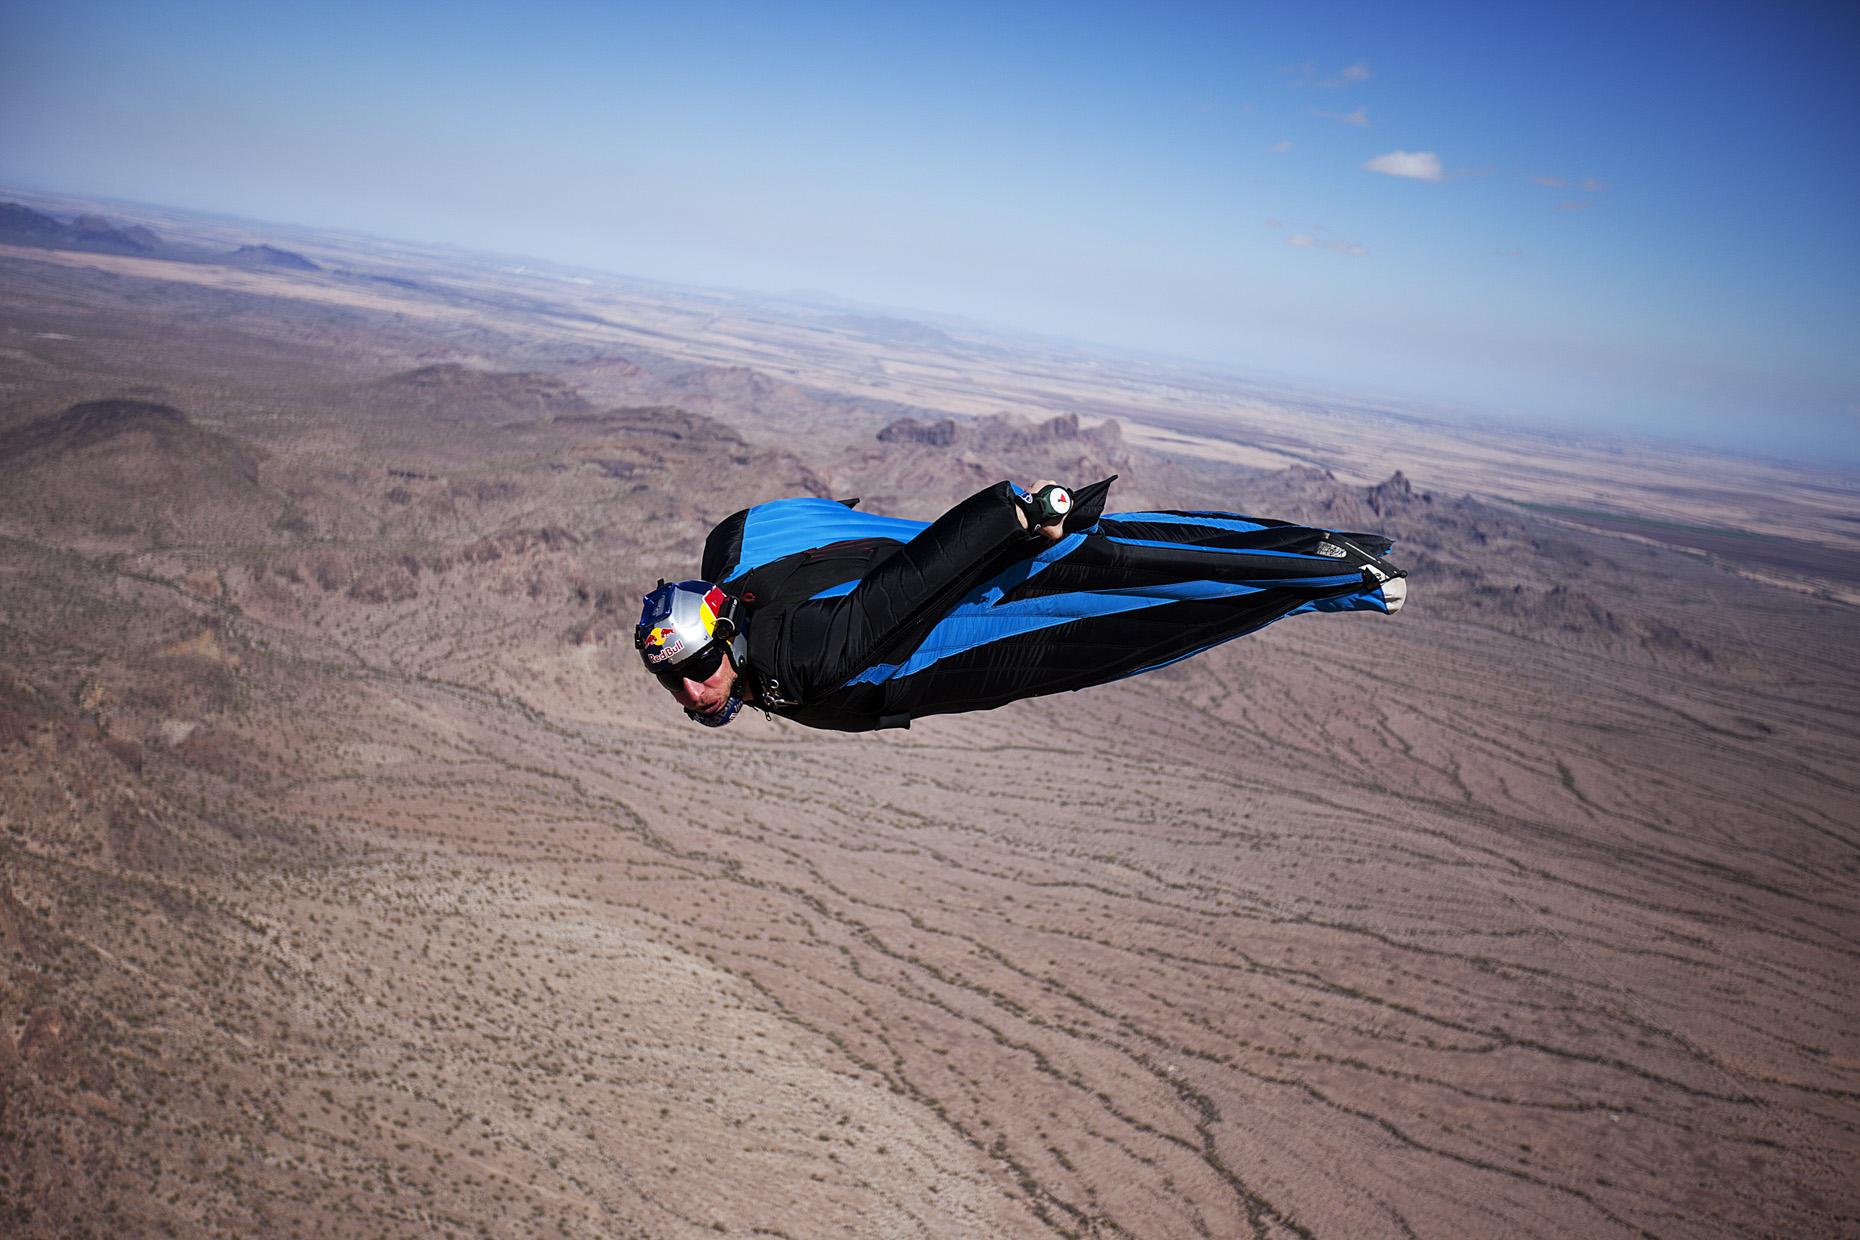 Andy Farrington wing suit skydiving for Red Bull by Boston based commercial sports photographer Brian Nevins